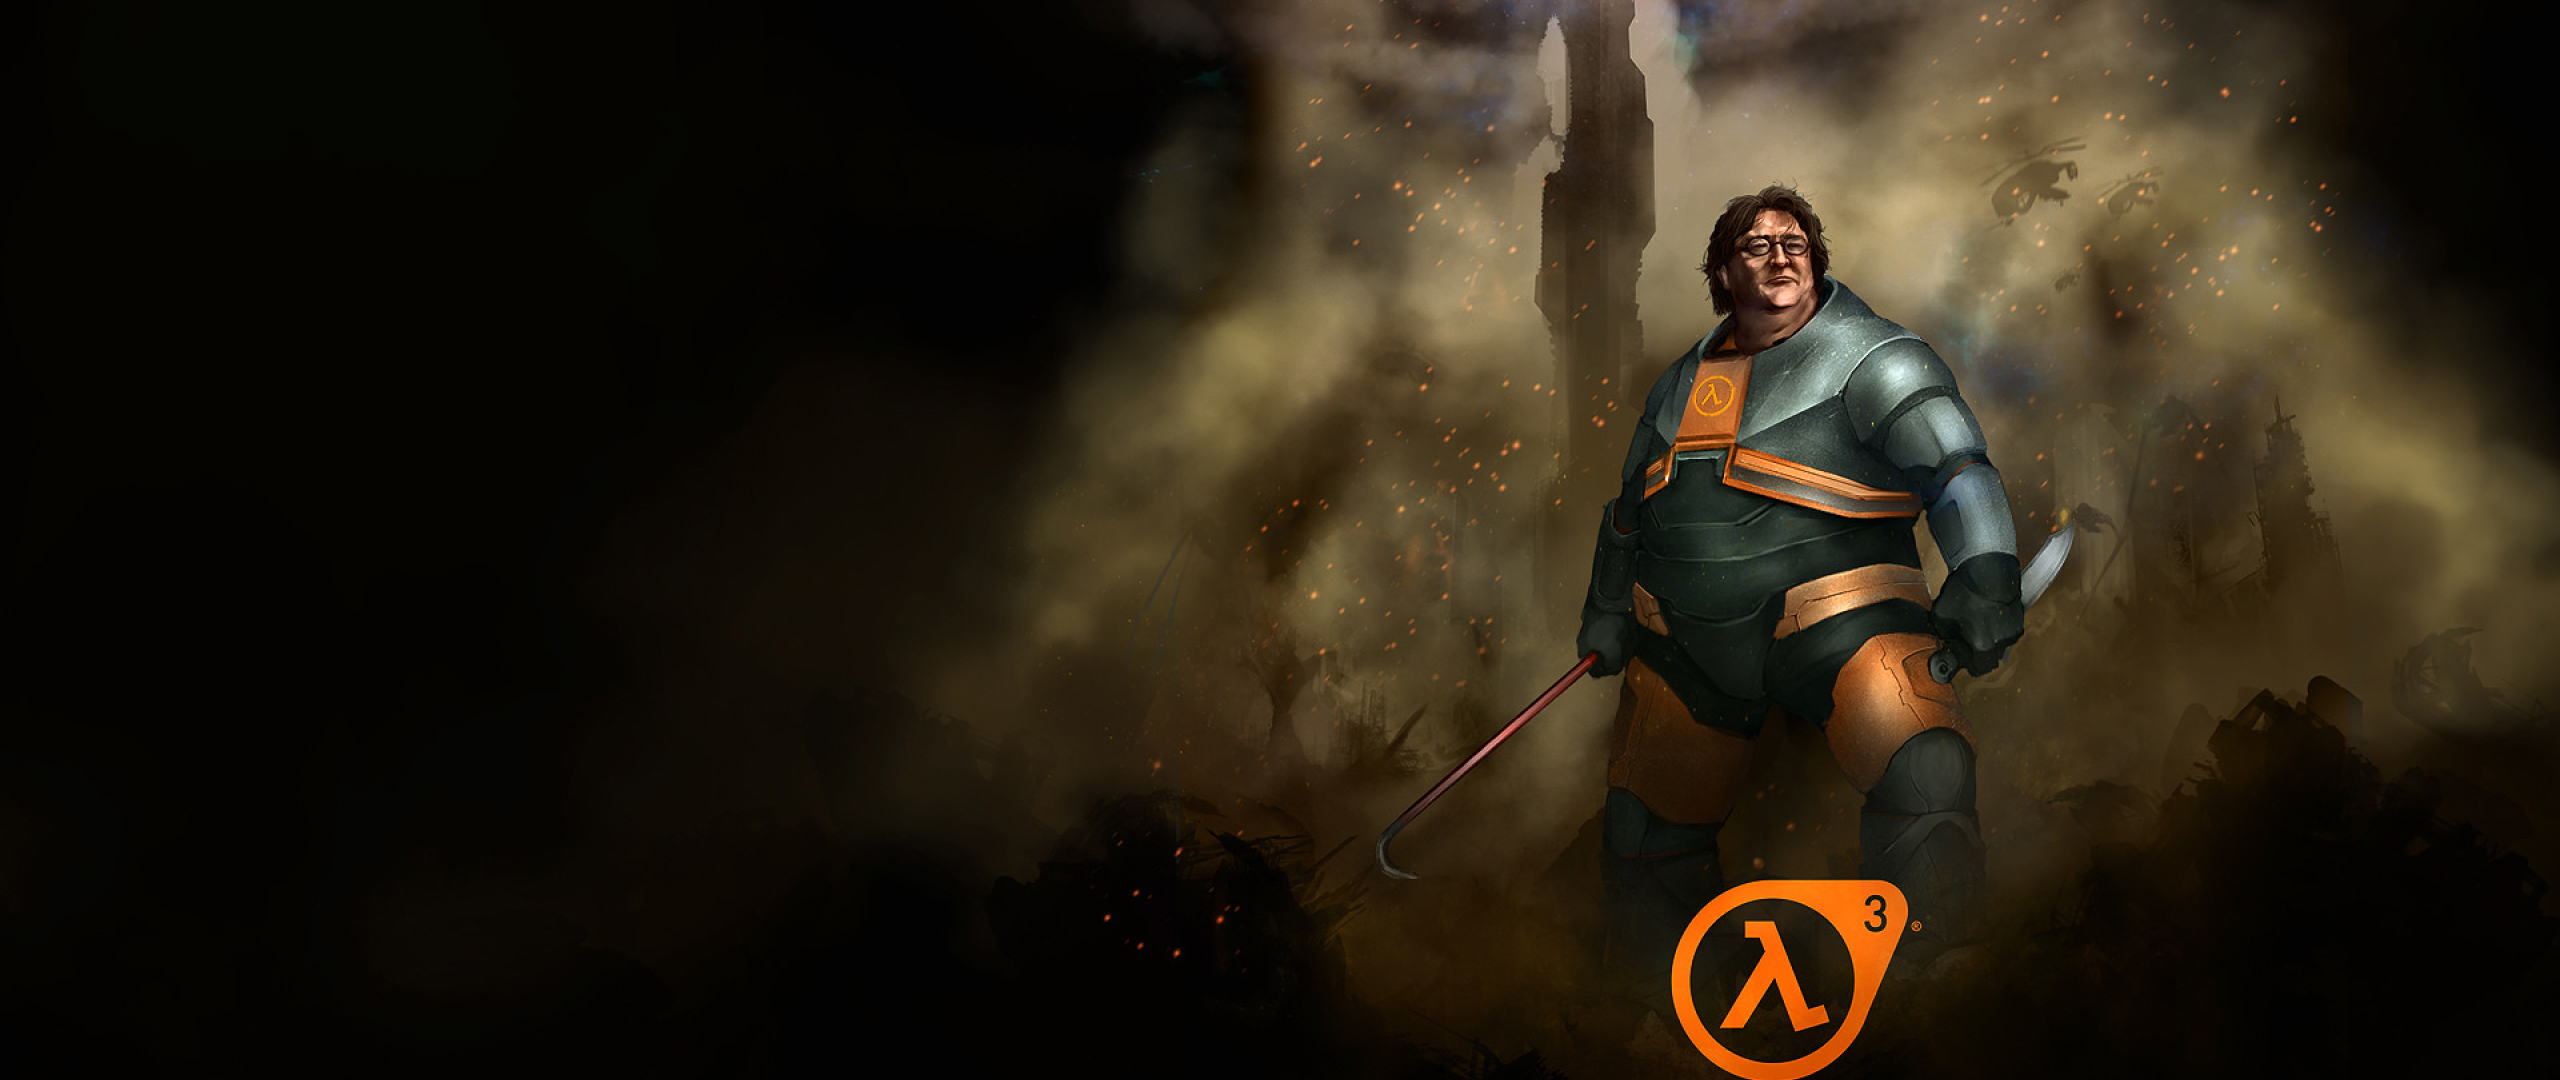 Half Life 3 Gabe Newell Funny Full Hd Wallpaper